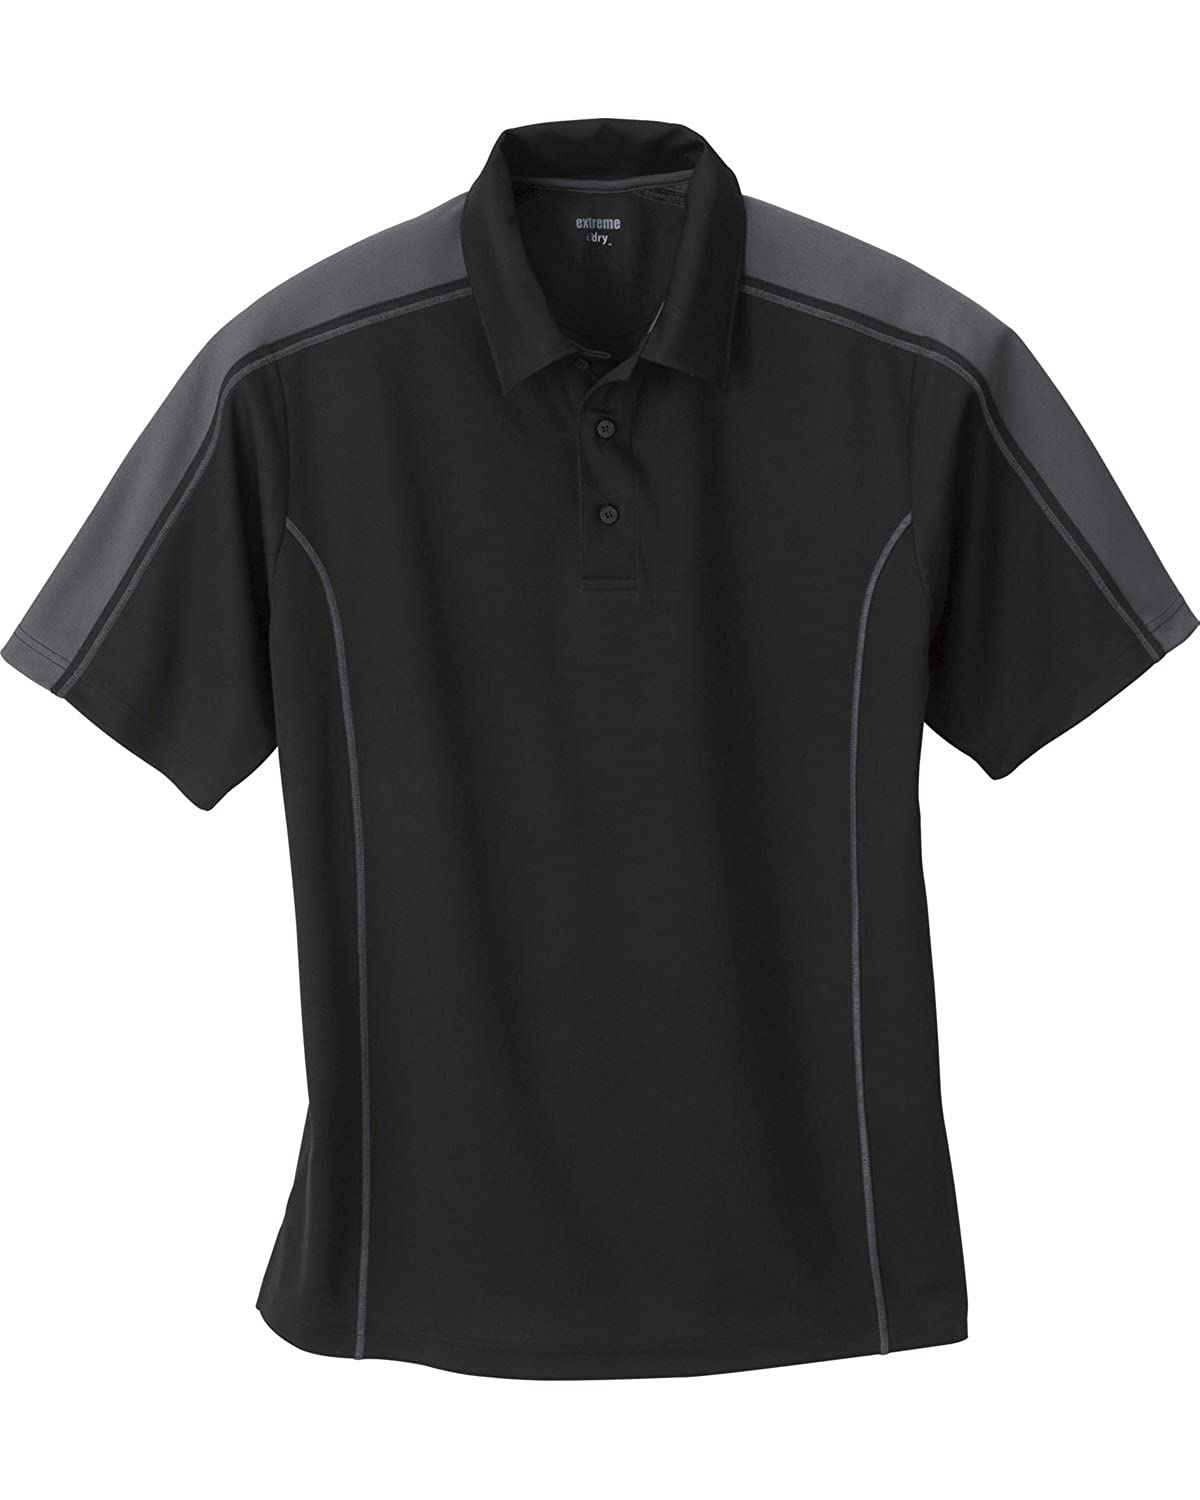 Extreme Men's Eperformance Piqu Color-Block Polo -85089- -BLACK 703 -S